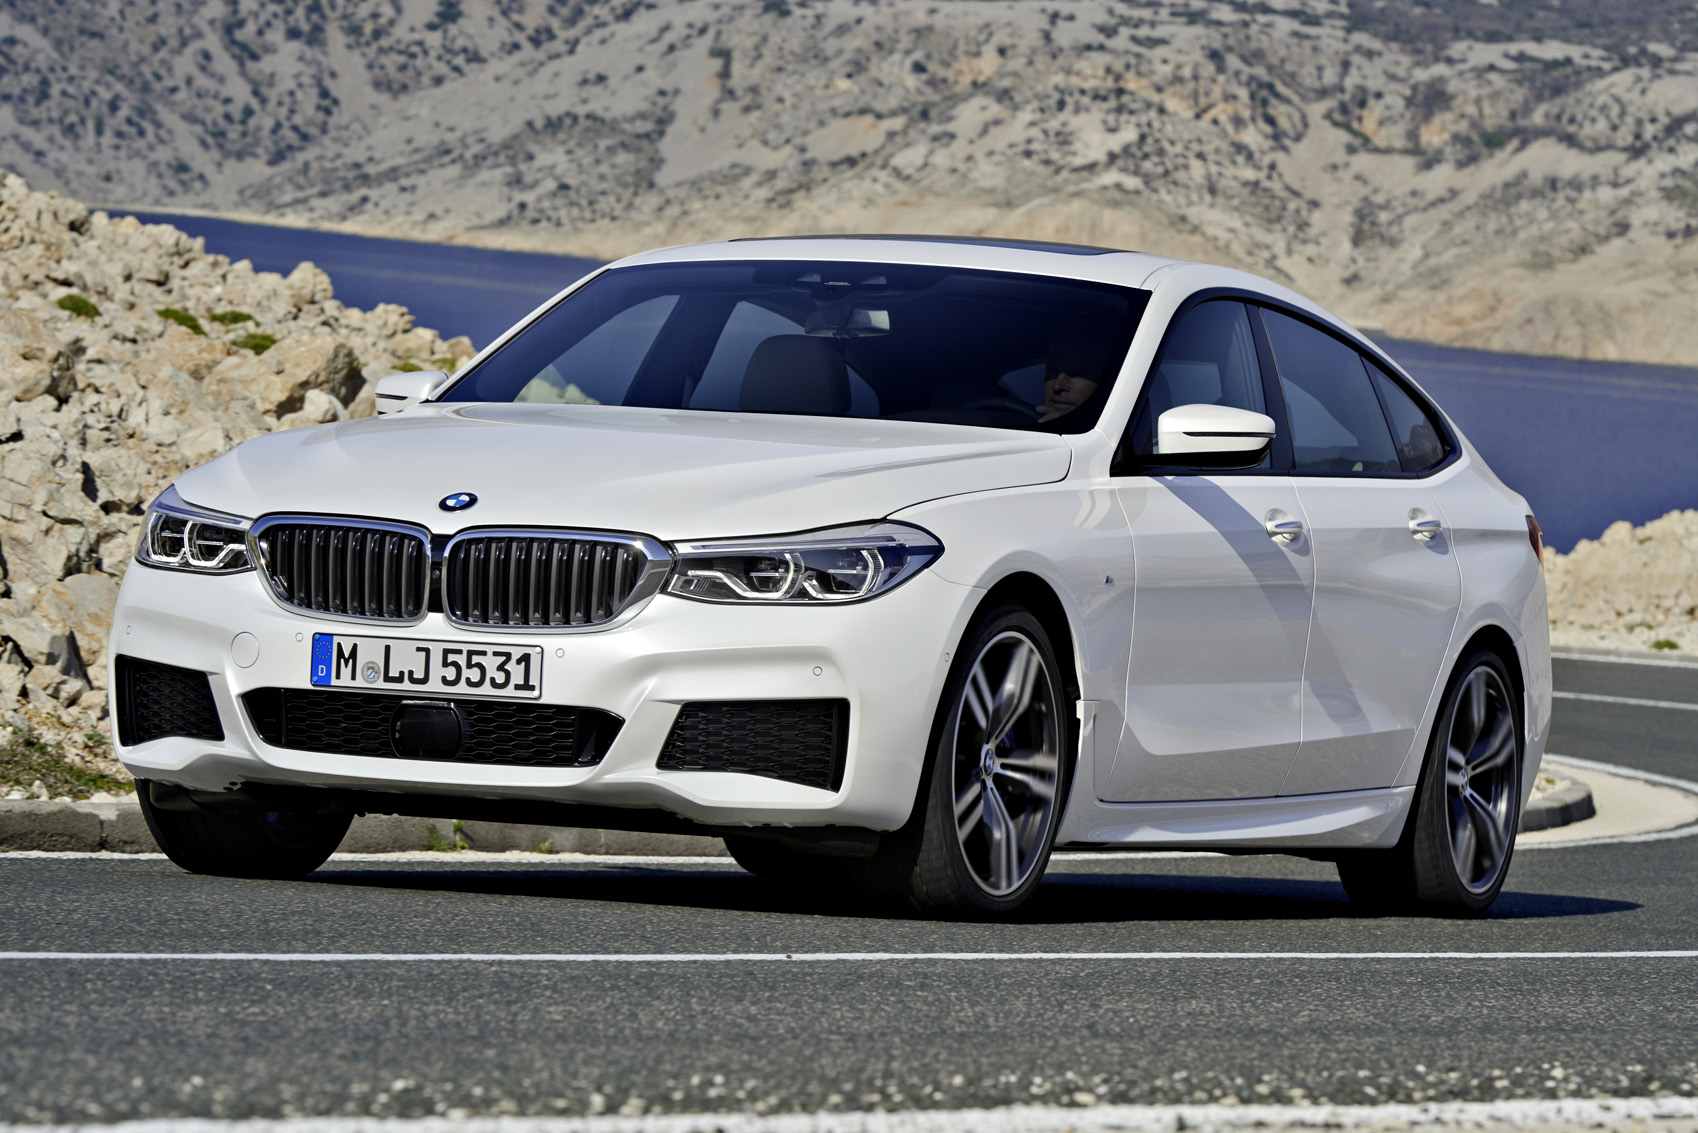 Bmw 6 Series Gt 2017 Review Autocar Consumer Electronics Vehicle Gps Car Video